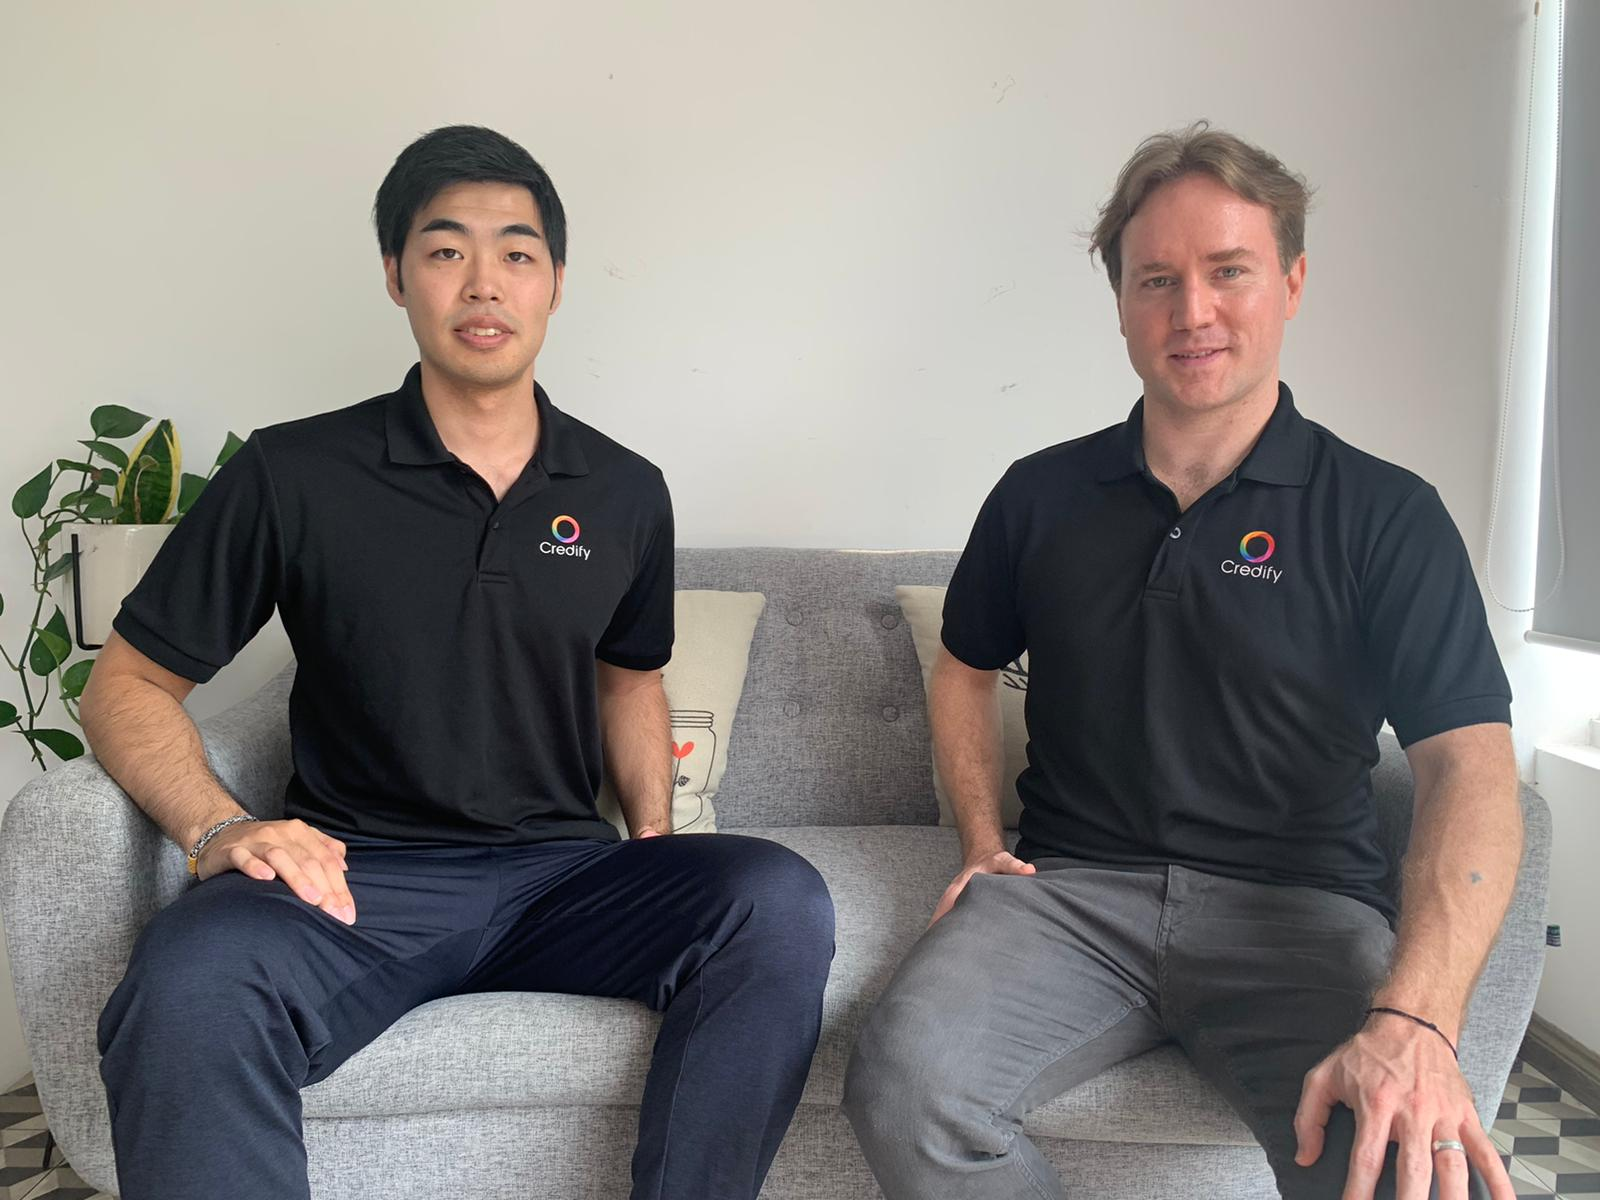 Asia Tech Podcast – Episode 105 – Makoto Tominaga and Shuichi Nagao – Credify – We Can Take That Existing Relationship and Superpower It